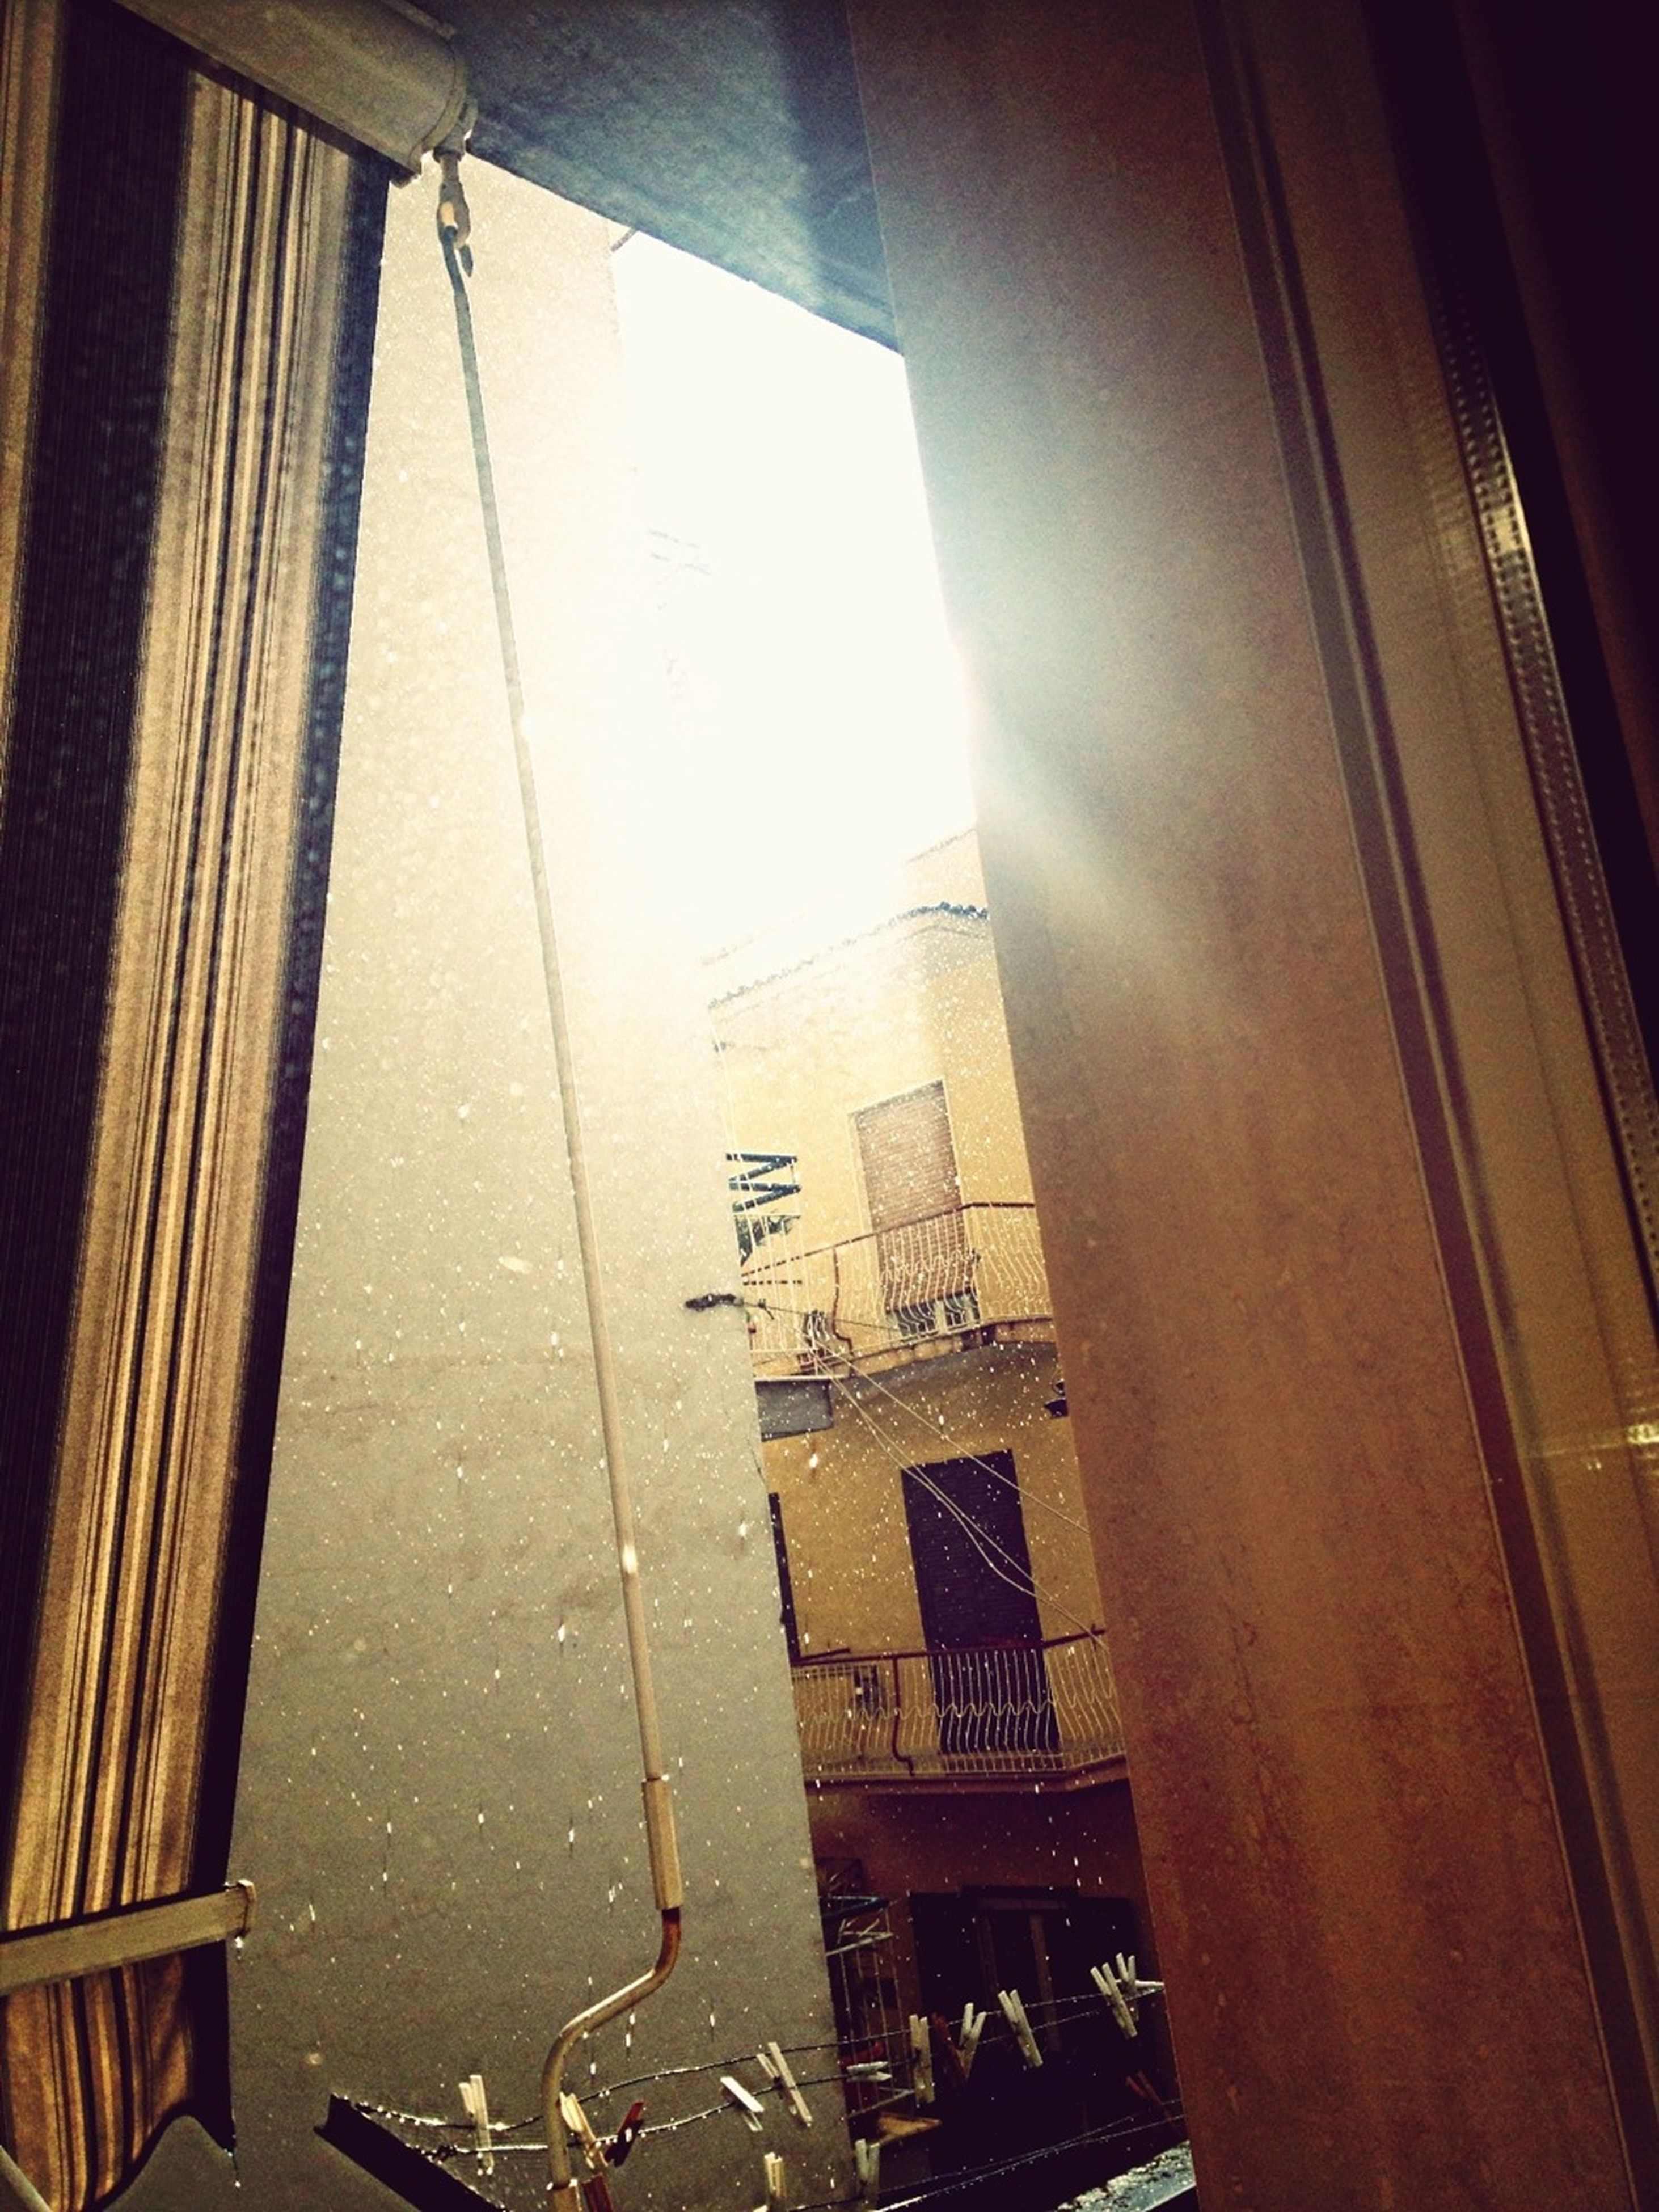 architecture, built structure, indoors, window, door, wall - building feature, building exterior, low angle view, sunlight, house, no people, building, wall, home interior, day, shadow, closed, residential structure, lighting equipment, entrance